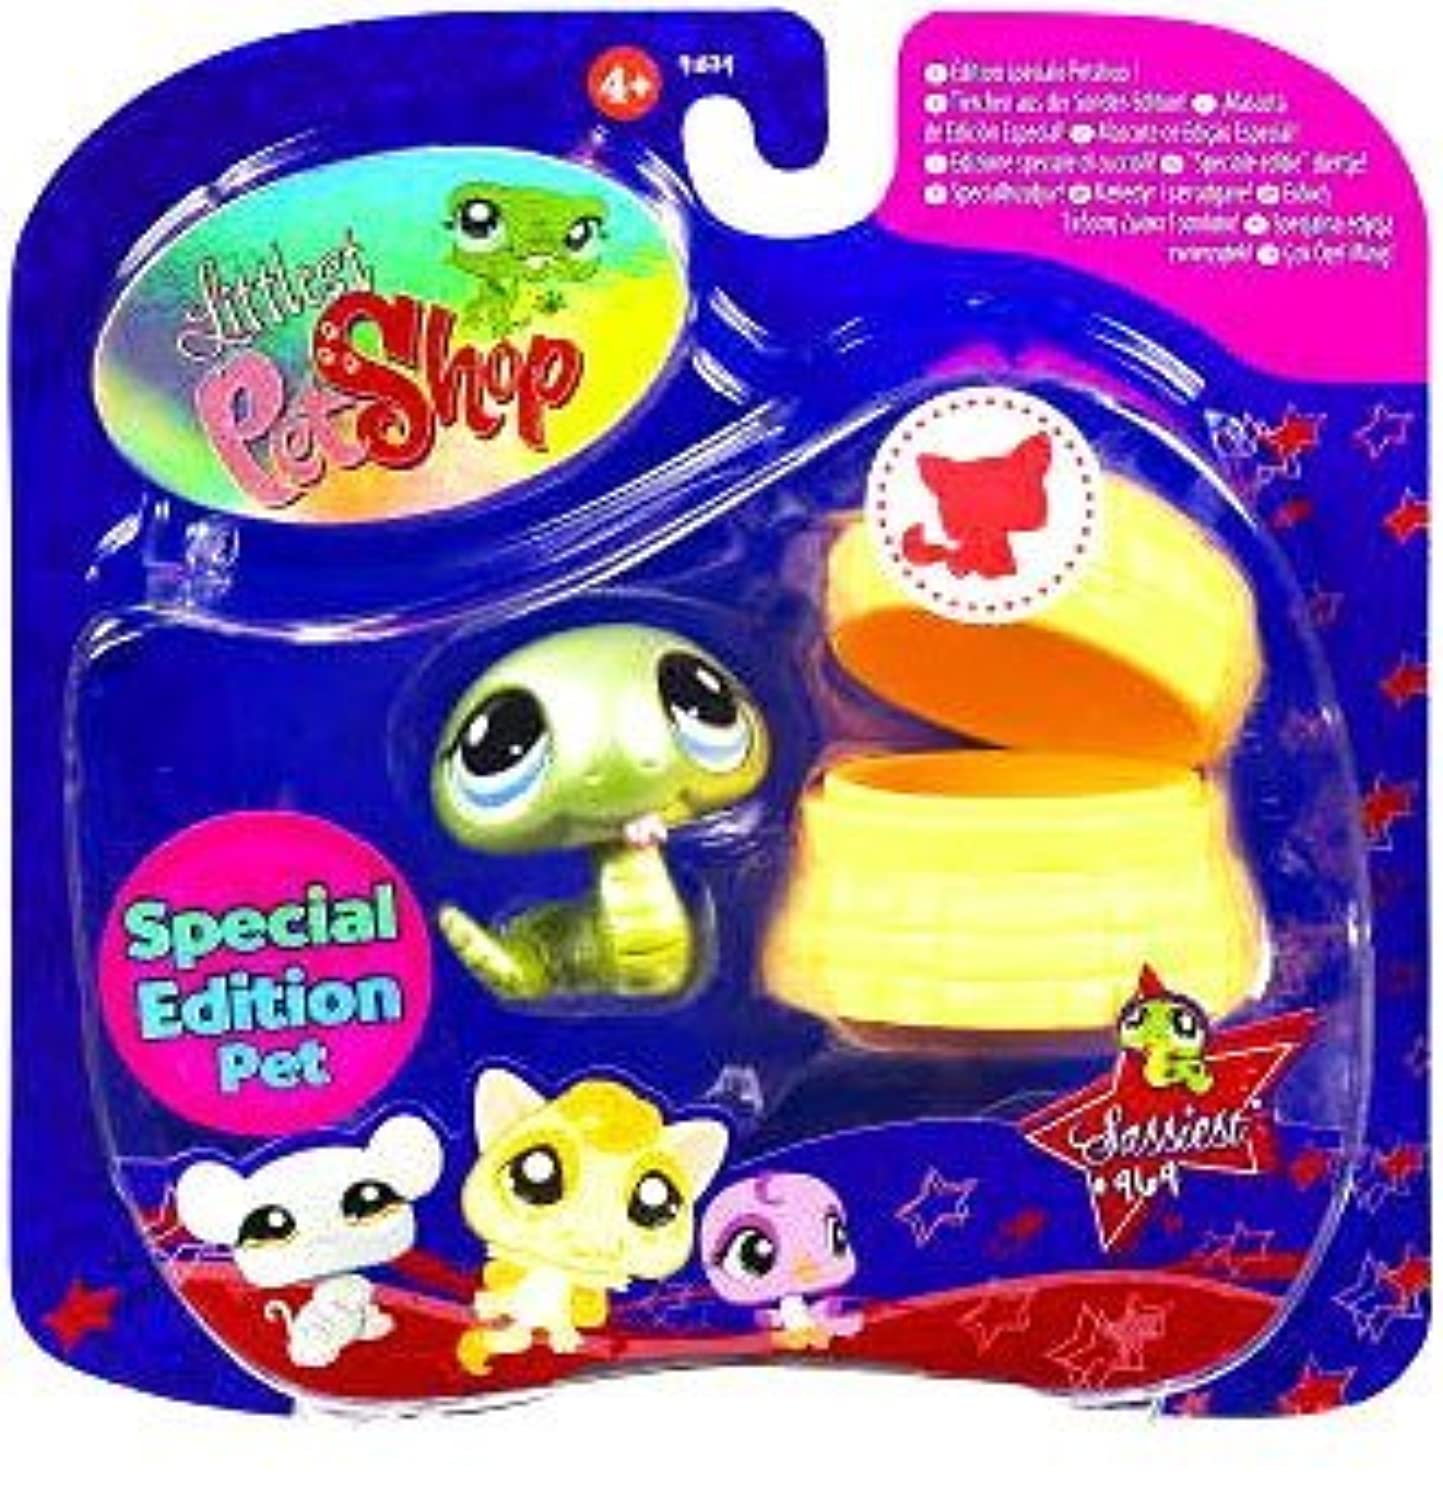 Littlest Pet Shop Assortment 'A' Series 3 Collectible Figure Snake with Basket Special Edition Pet! by Hasbro [並行輸入品]